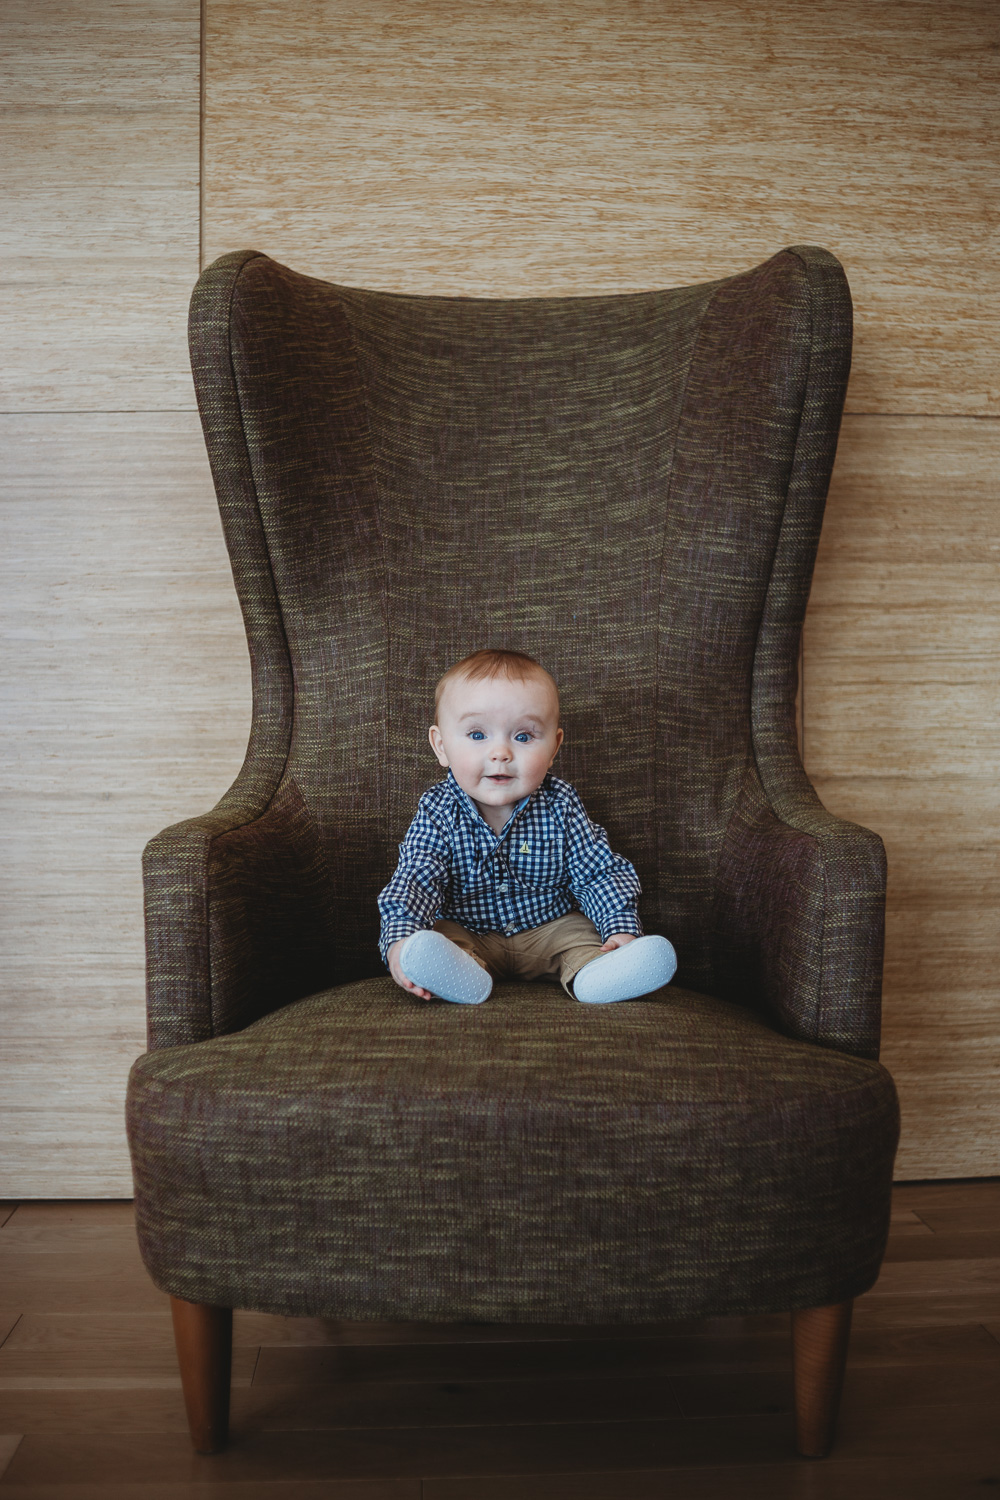 6-month-old-sitting-in-a-chair-photography -1.jpg